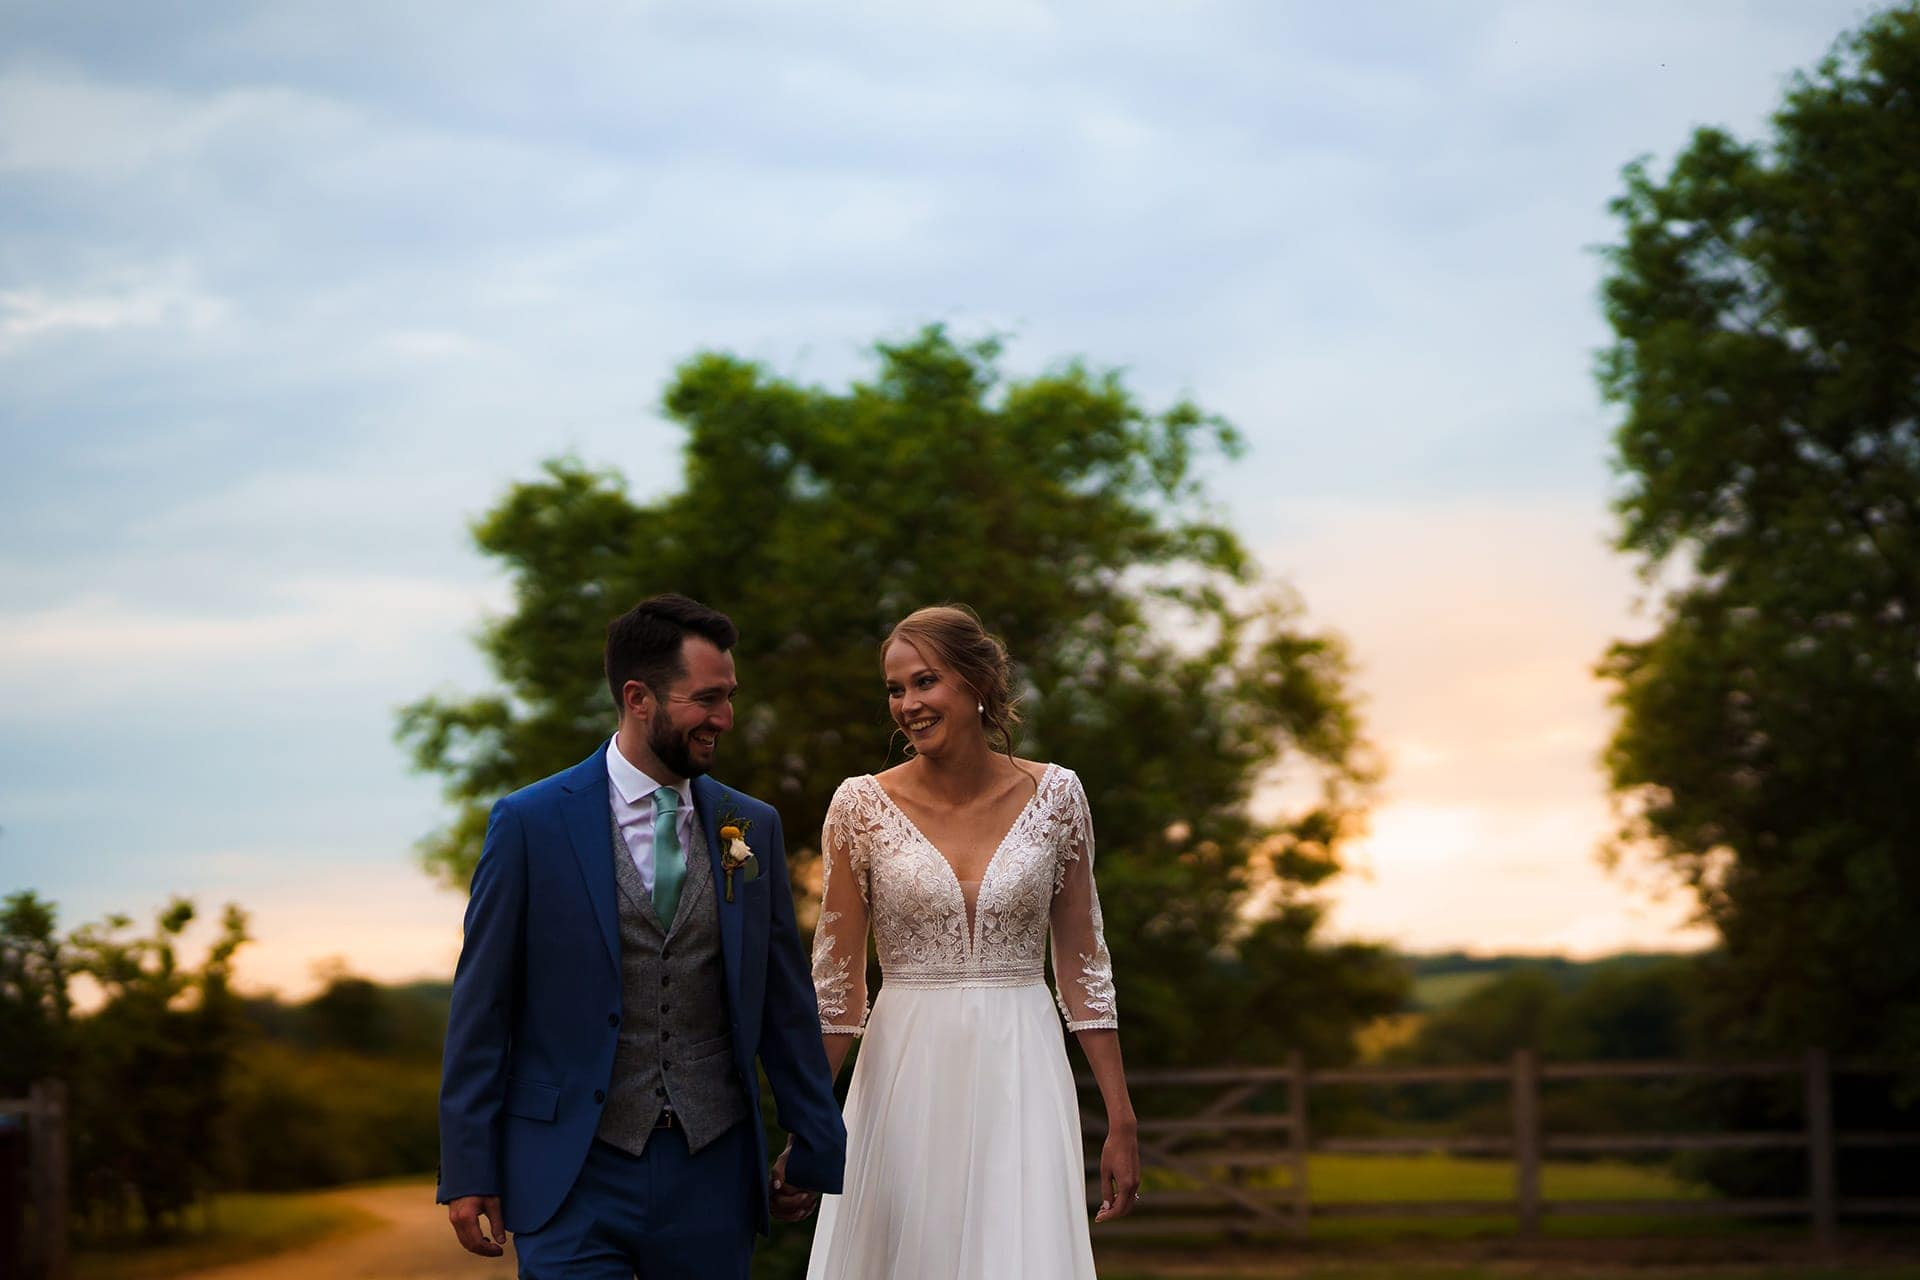 A bride and Groom enjoy their wedding at Dodford Manor during sunset